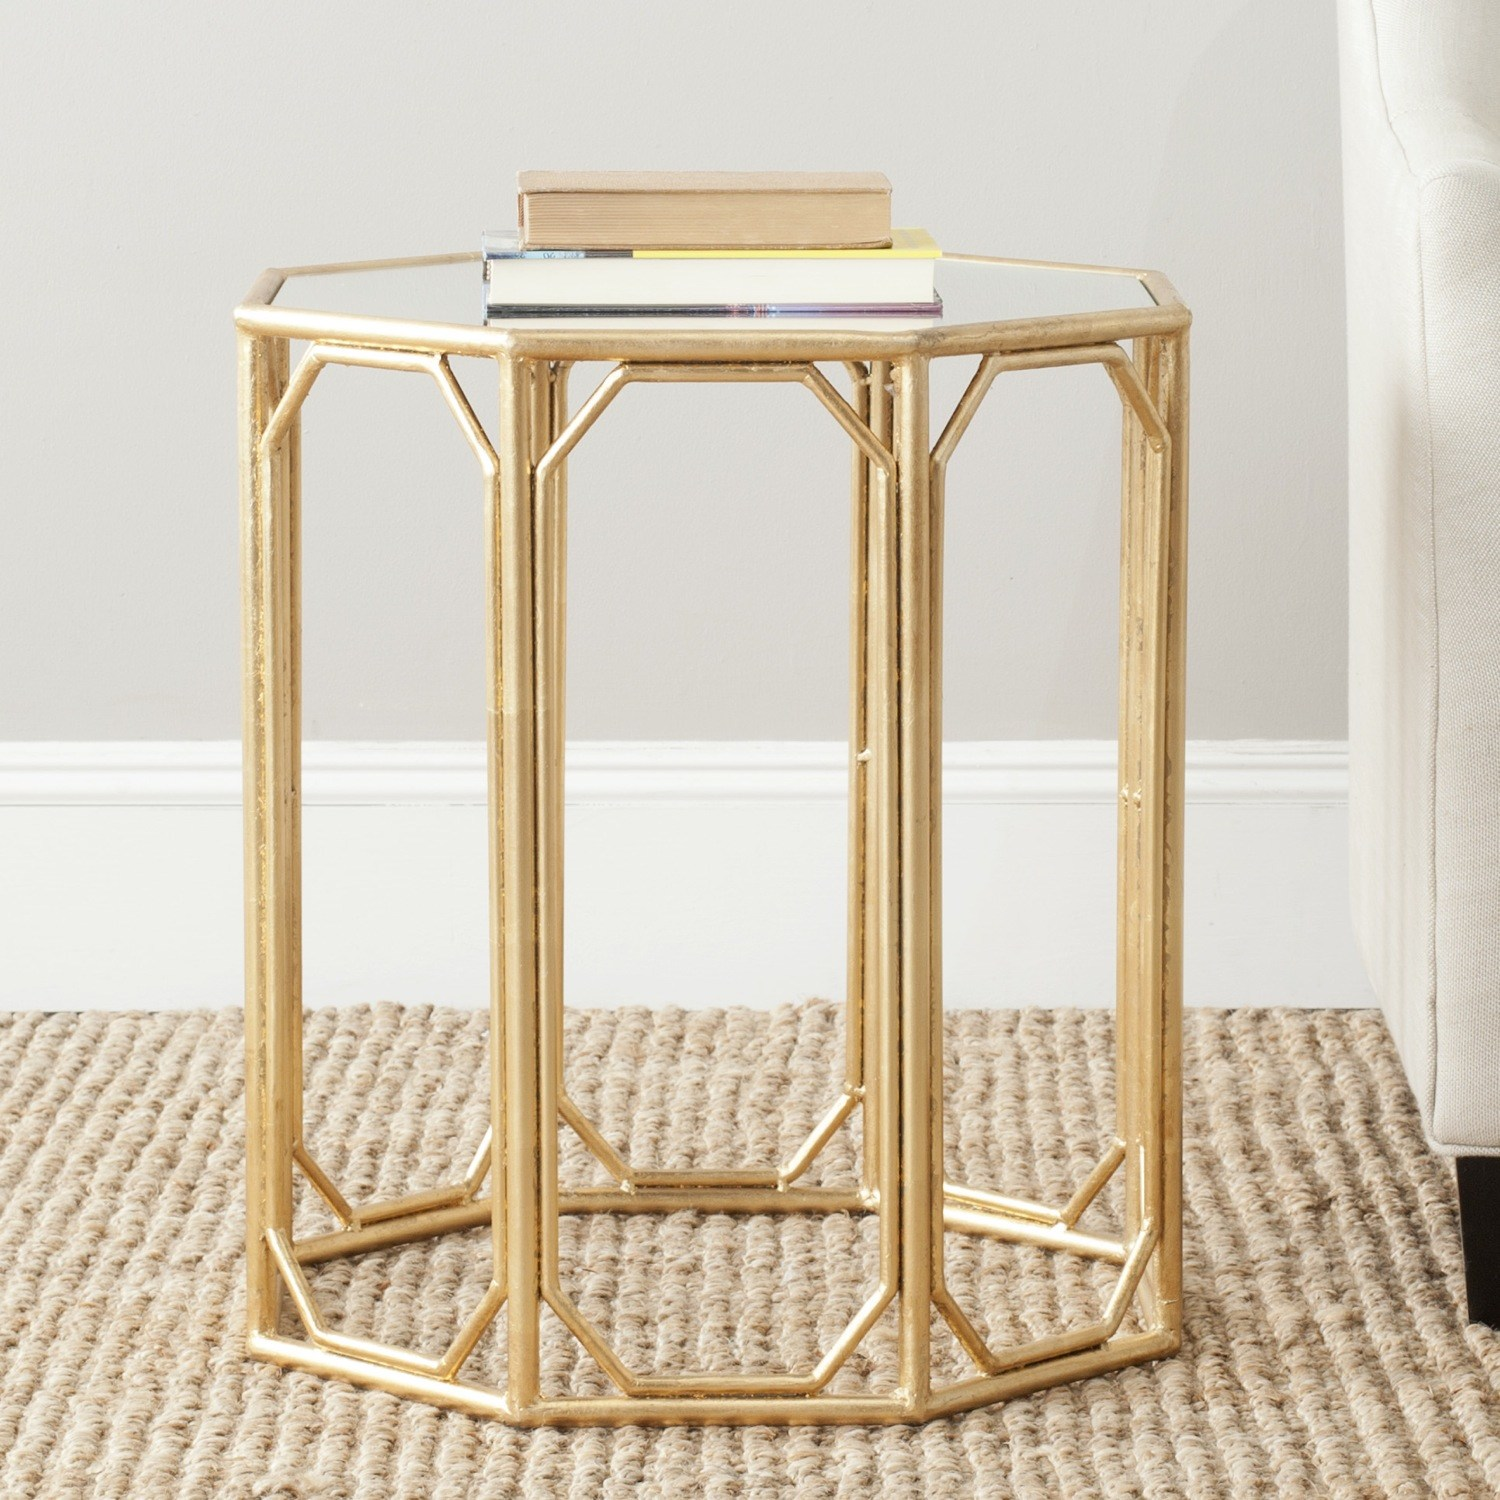 safavieh treasures muriel gold mirror top accent table free mirrored shipping today plastic garden furniture sets wine rack childrens outdoor west elm wood console weber grill